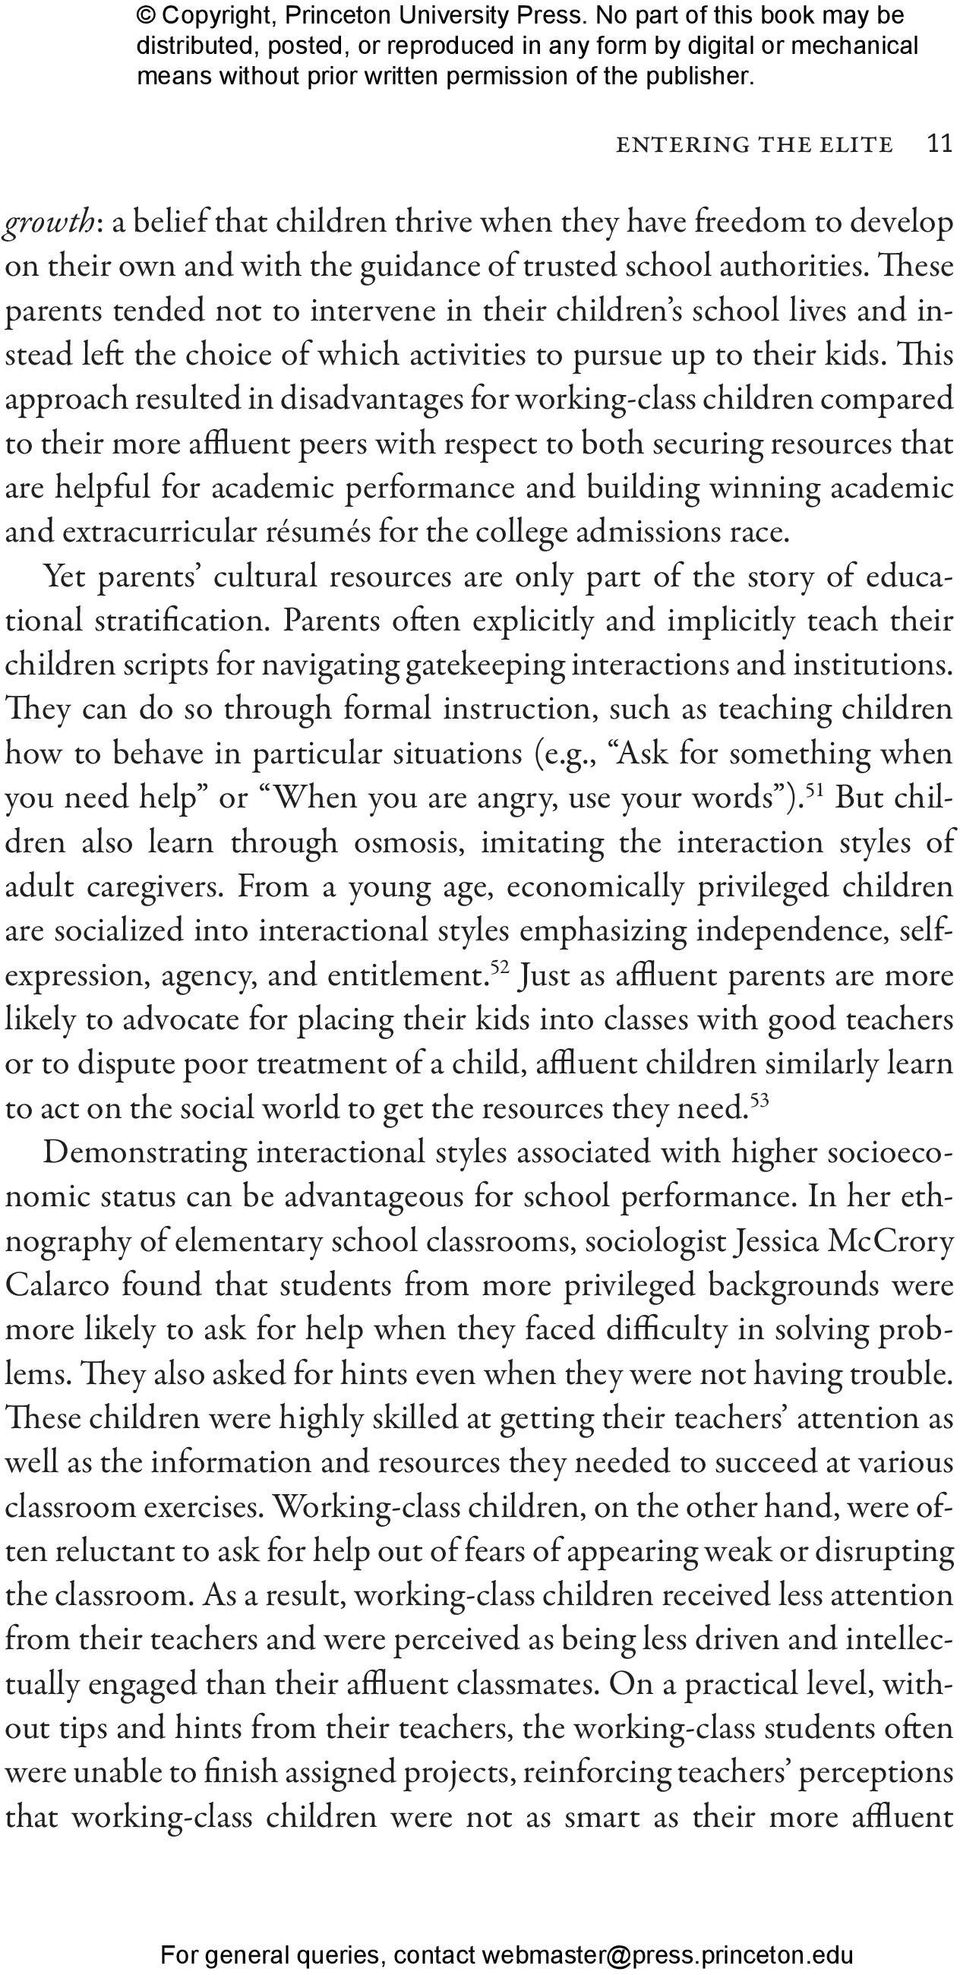 This approach resulted in disadvantages for working- class children compared to their more affluent peers with respect to both securing resources that are helpful for academic performance and